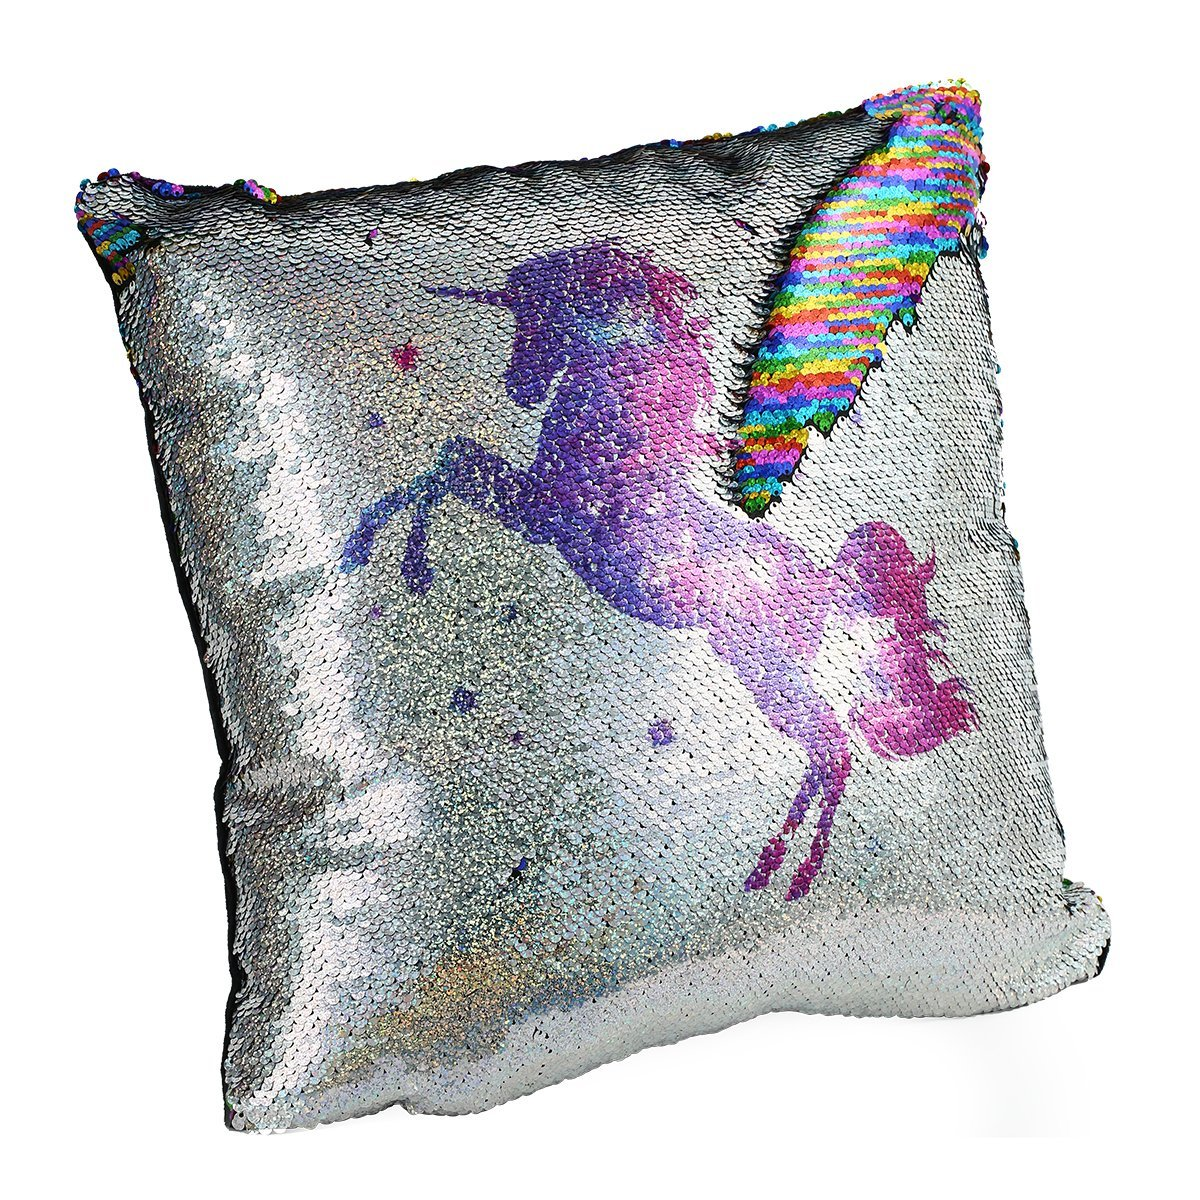 meowtastic Sequin Decorative Throw Pillow Unicorn Rainbow Reversible Sequin Pillow with Insert 16 by 16 Inches